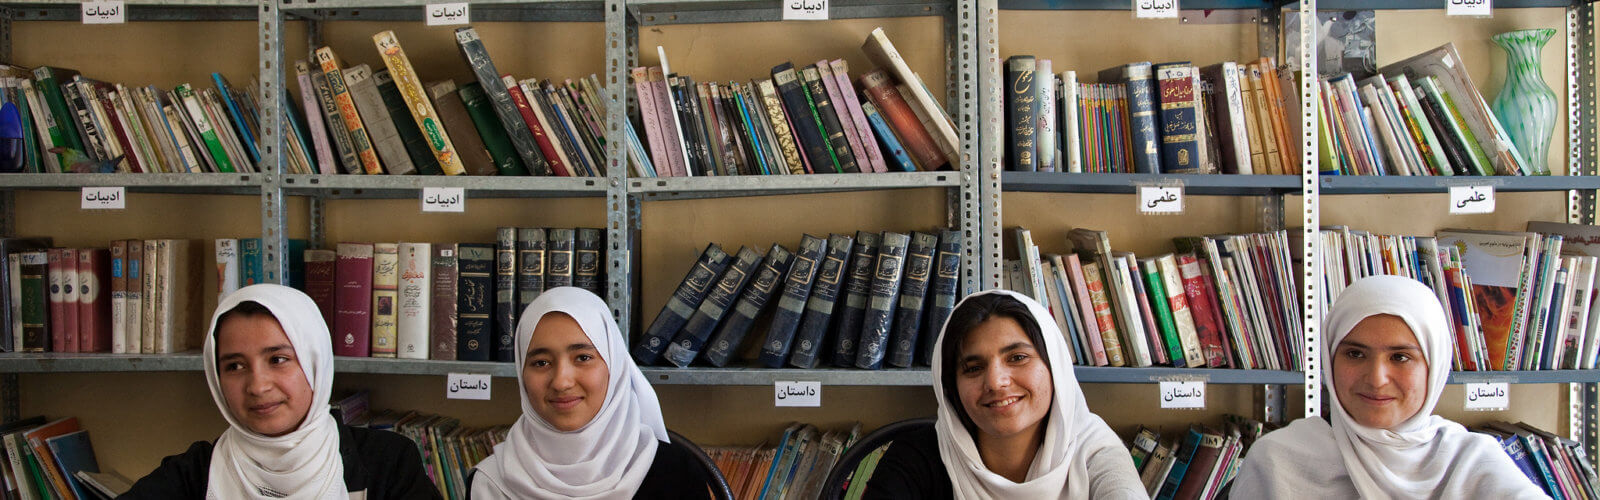 Photo: Graham Crouch / World Bank Photo ID: 120512_Herat EQUIP School project_015